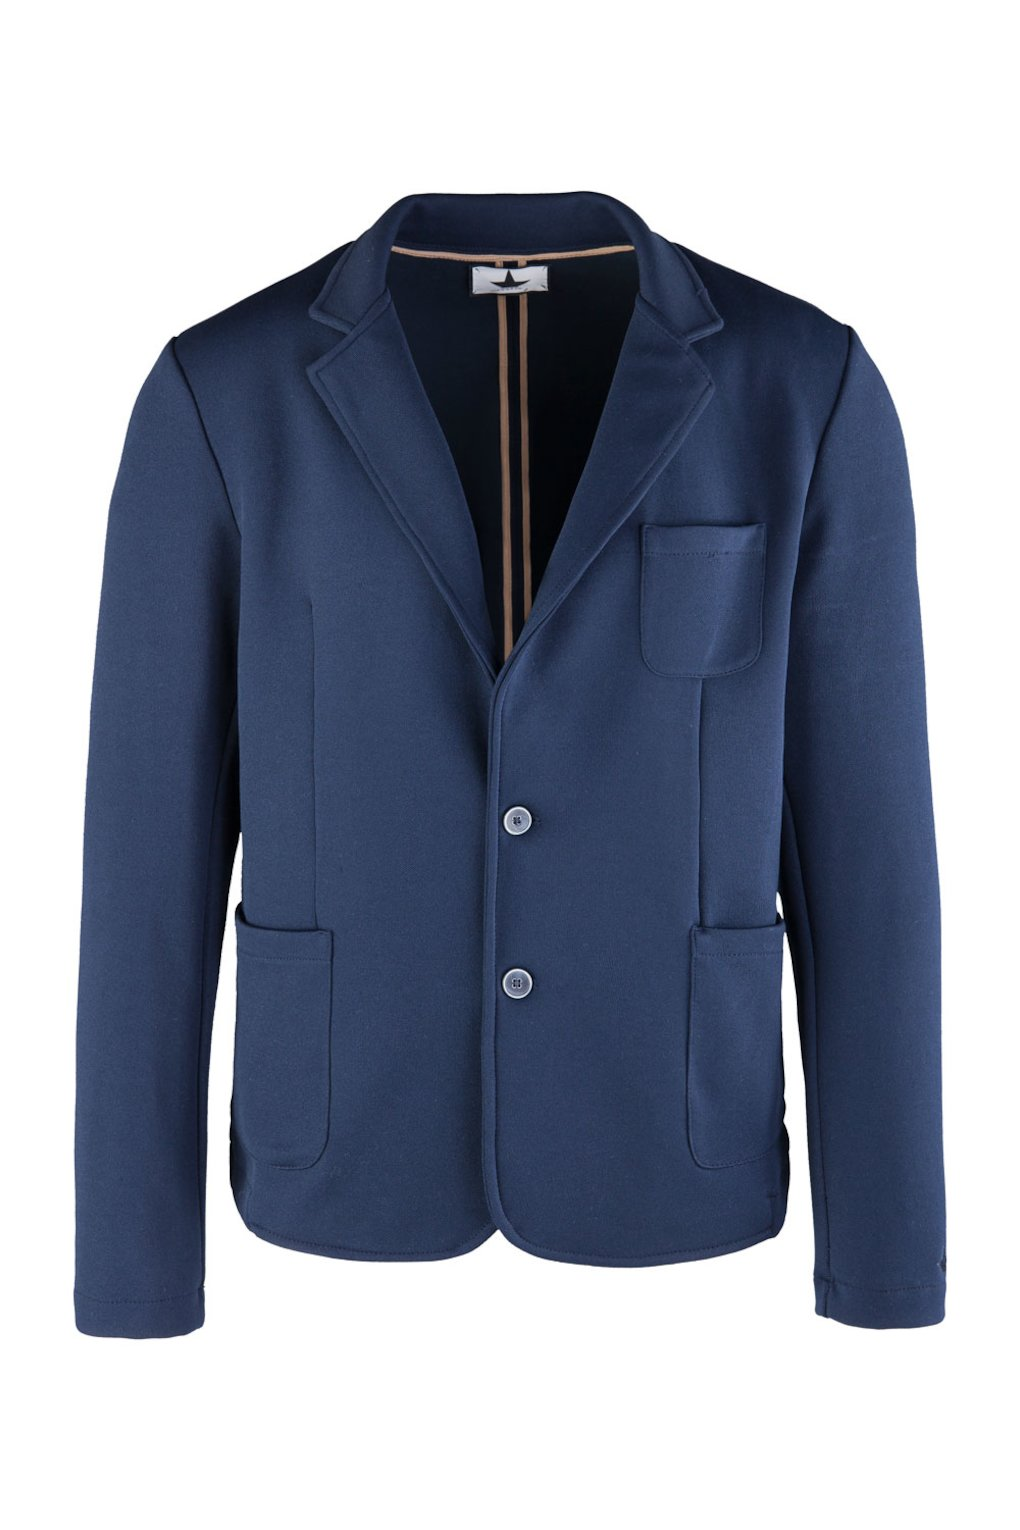 Blazer with Buttons